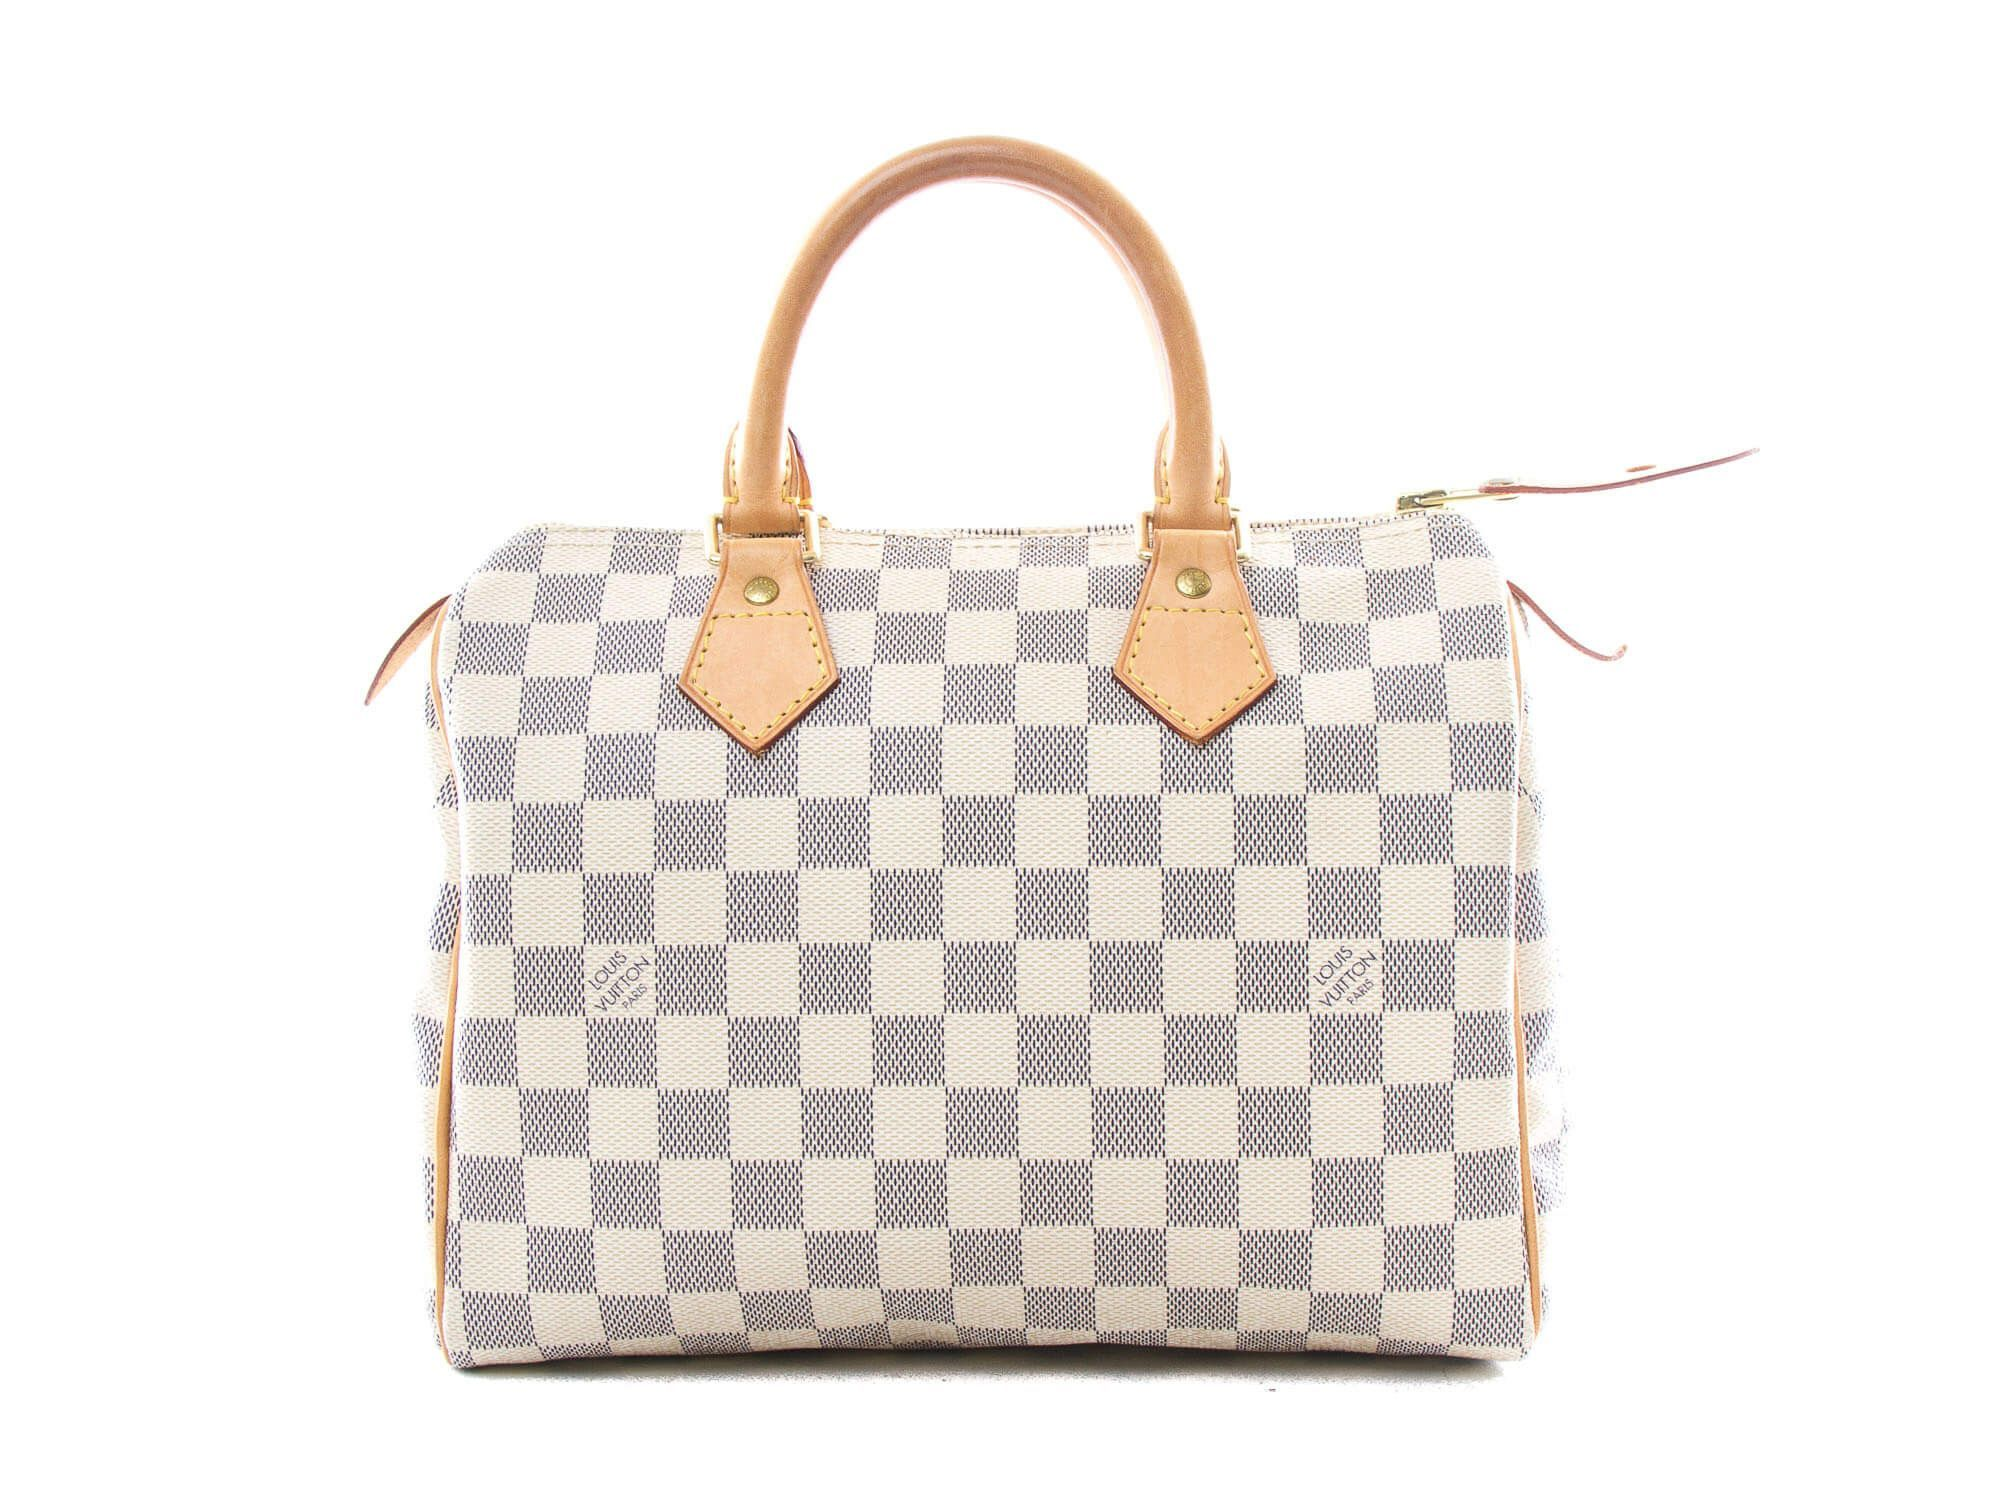 3958bb958ad6 Authentic Louis Vuitton Damier Azur Speedy 25 handbag N41534 ...